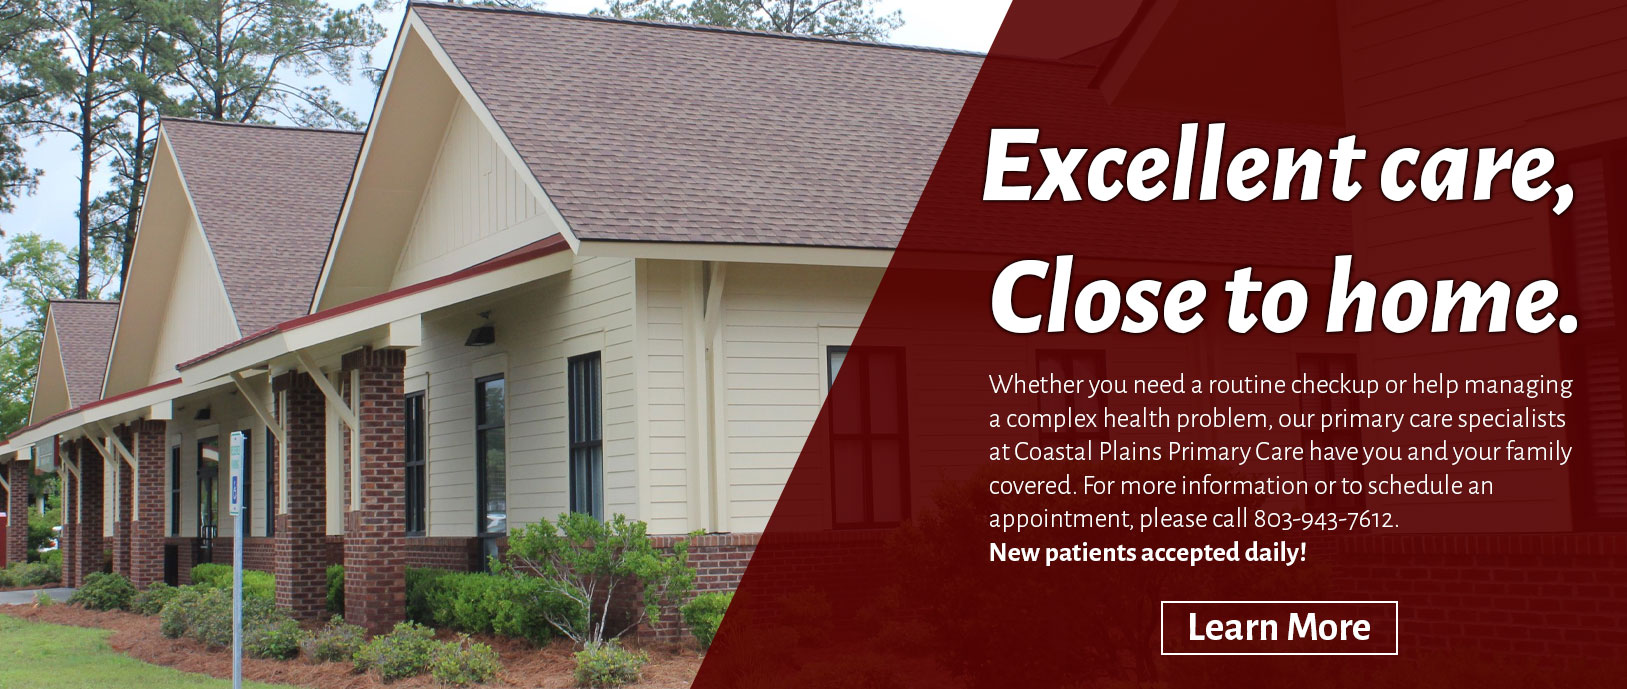 Excellent care, Close to home.   Whether you need a routine checkup or help managing a complex health problem, our primary care specialists at Coastal Plains Primary Care have you and your family covered. For more information or to schedule an appointment, please call 803-943-7612. New patients accepted daily!